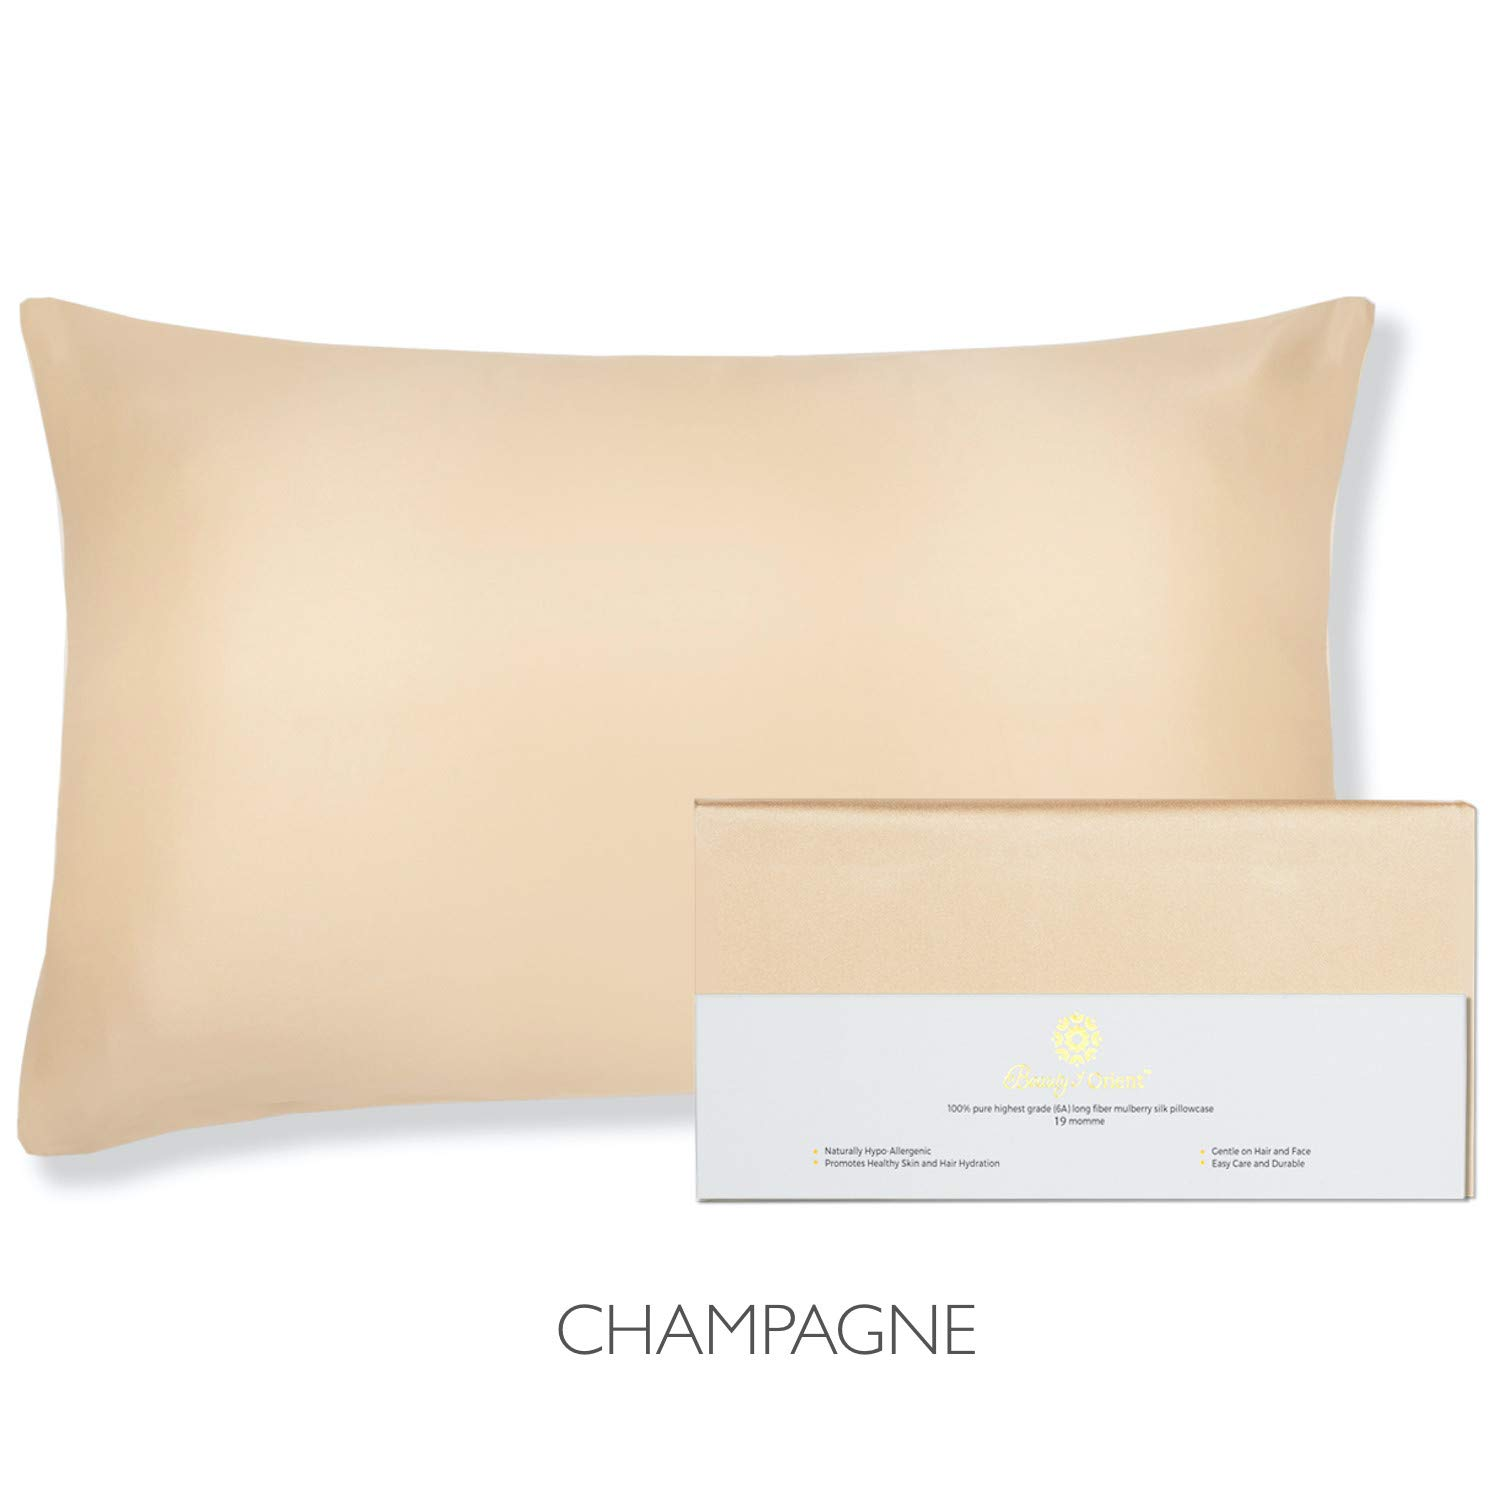 """Beauty of Orient - 100% Pure Mulberry Silk Pillowcase for Hair and Skin, 19 Momme Both Sides, Hidden Zipper, Natural Hypoallergenic Silk Pillow Case (1pc Queen - 20"""" x 30"""", Champagne)"""